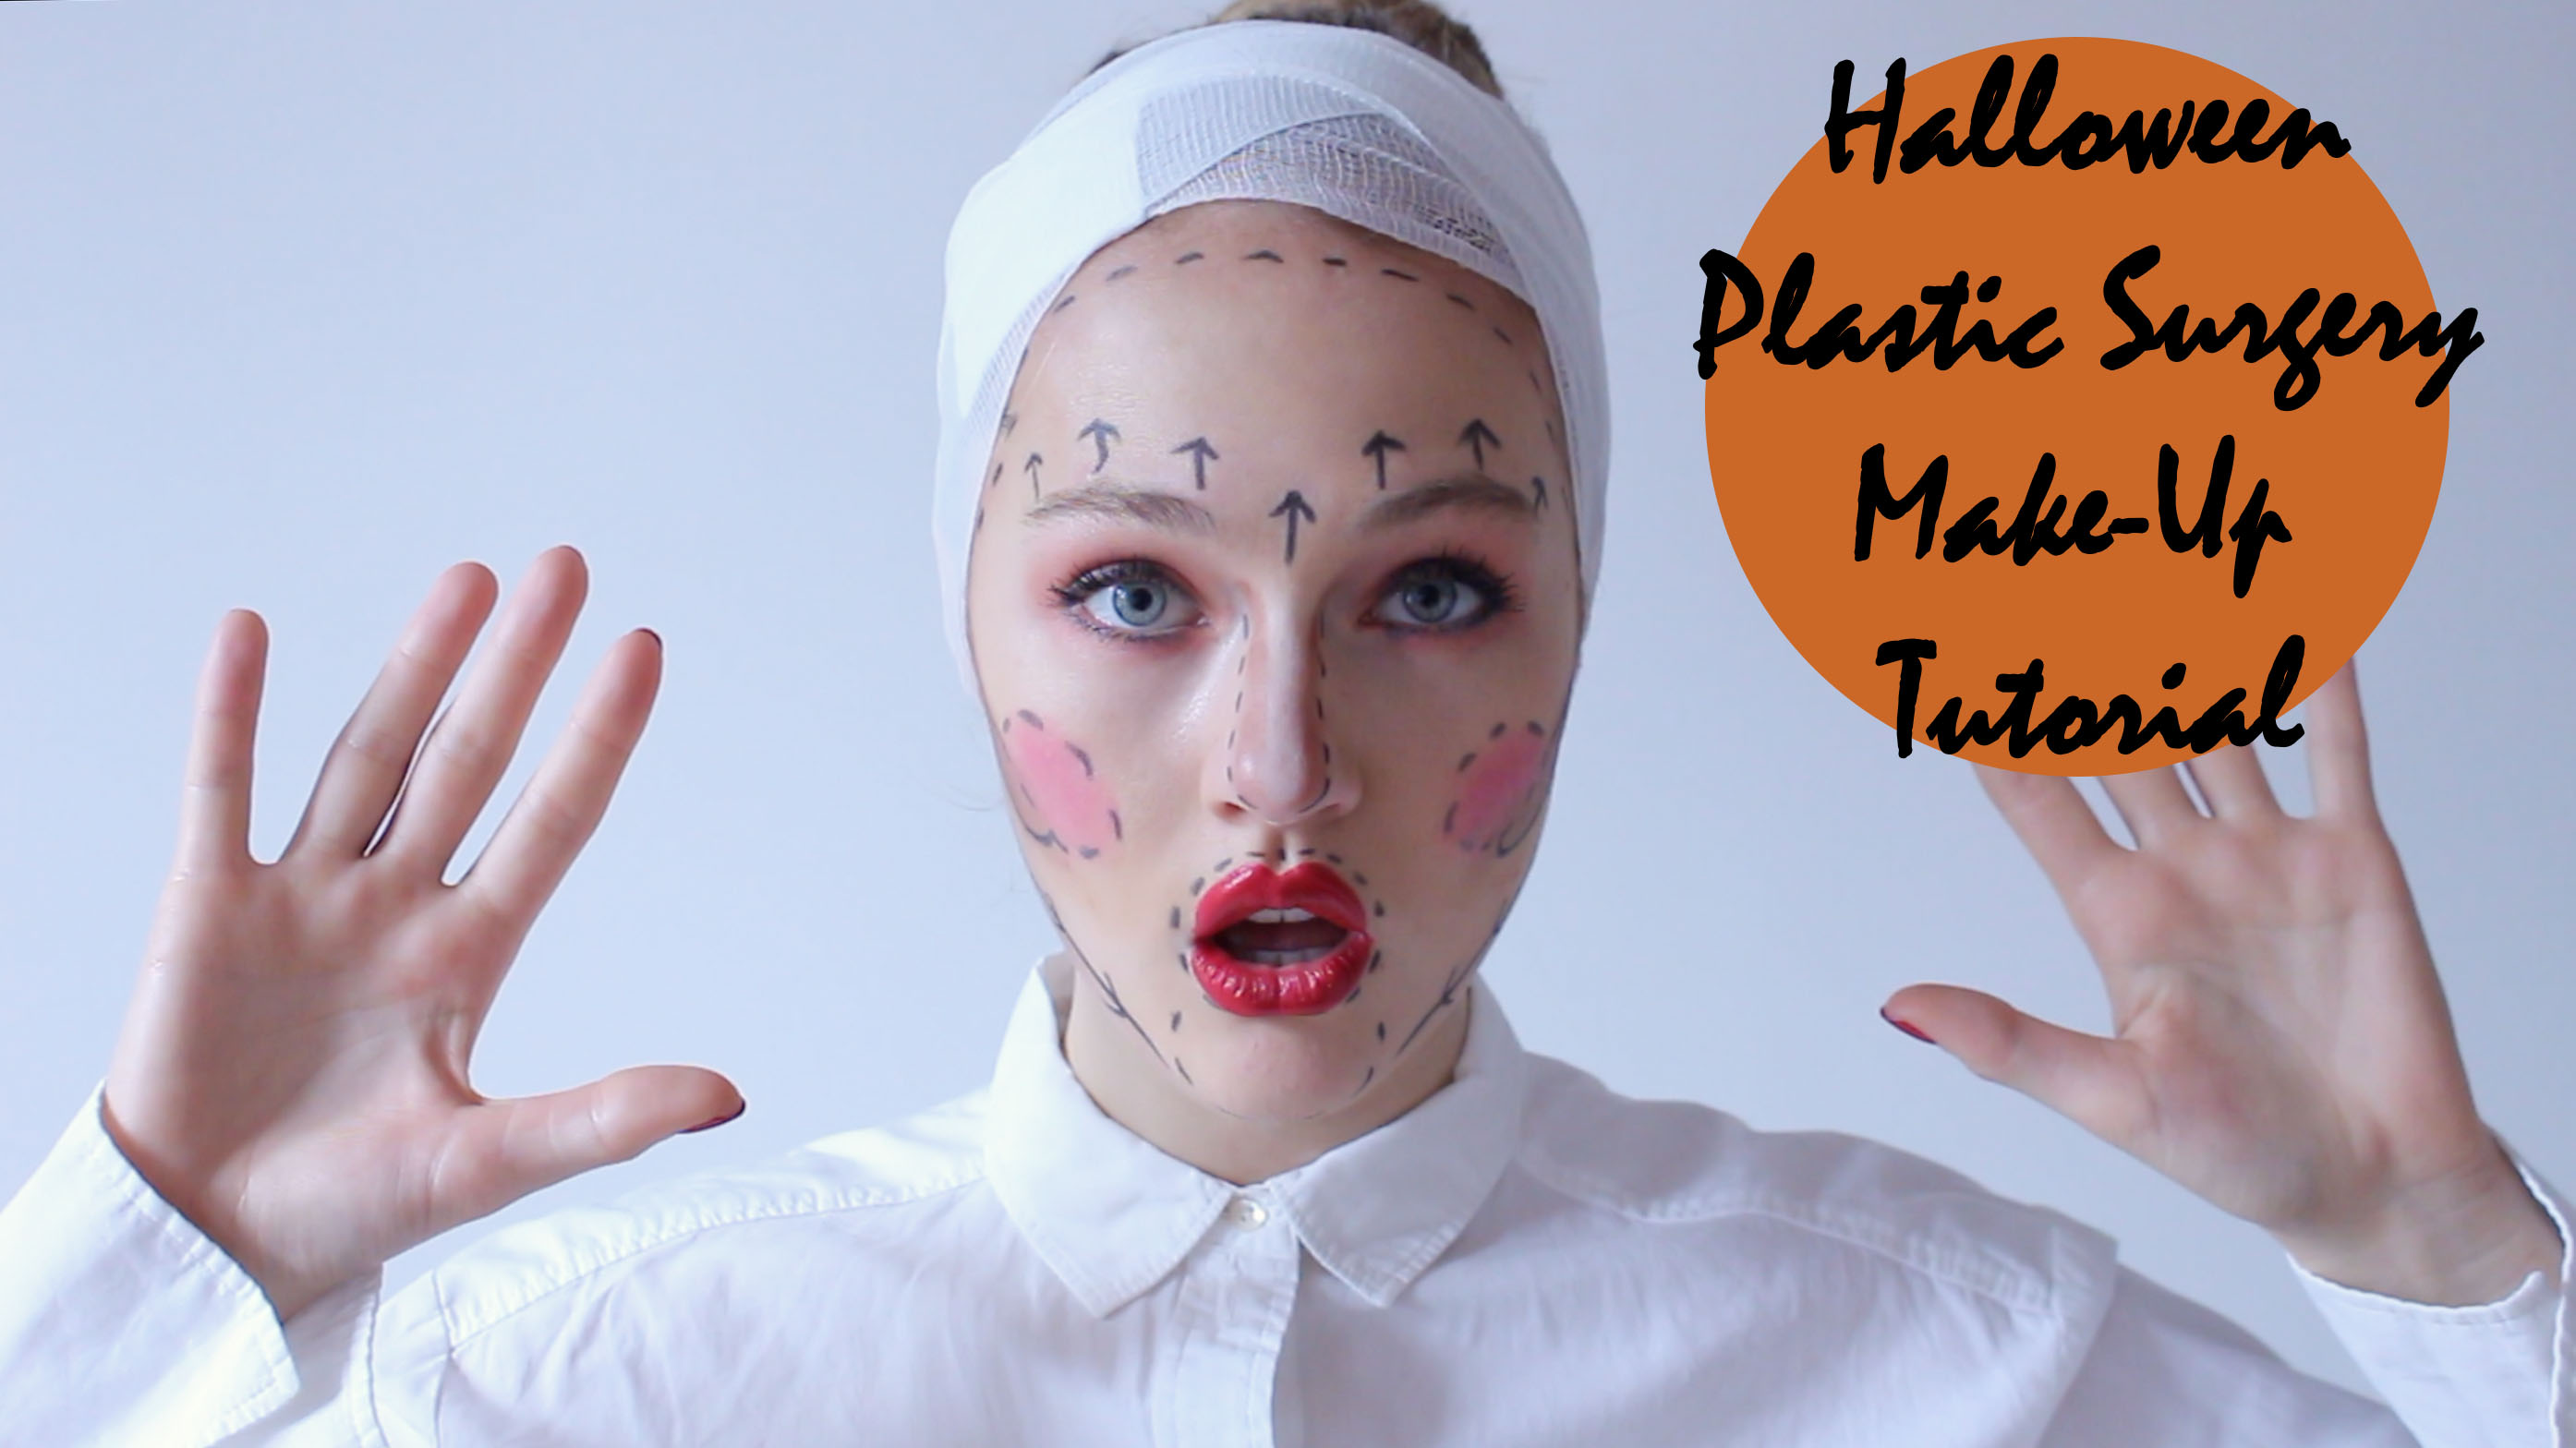 Floortjeloves, halloween, halloween make-up tutorial, halloween tutorial, halloween ideas, halloween plastic surgery make-up, plastic surgery, plastic surgery make-up